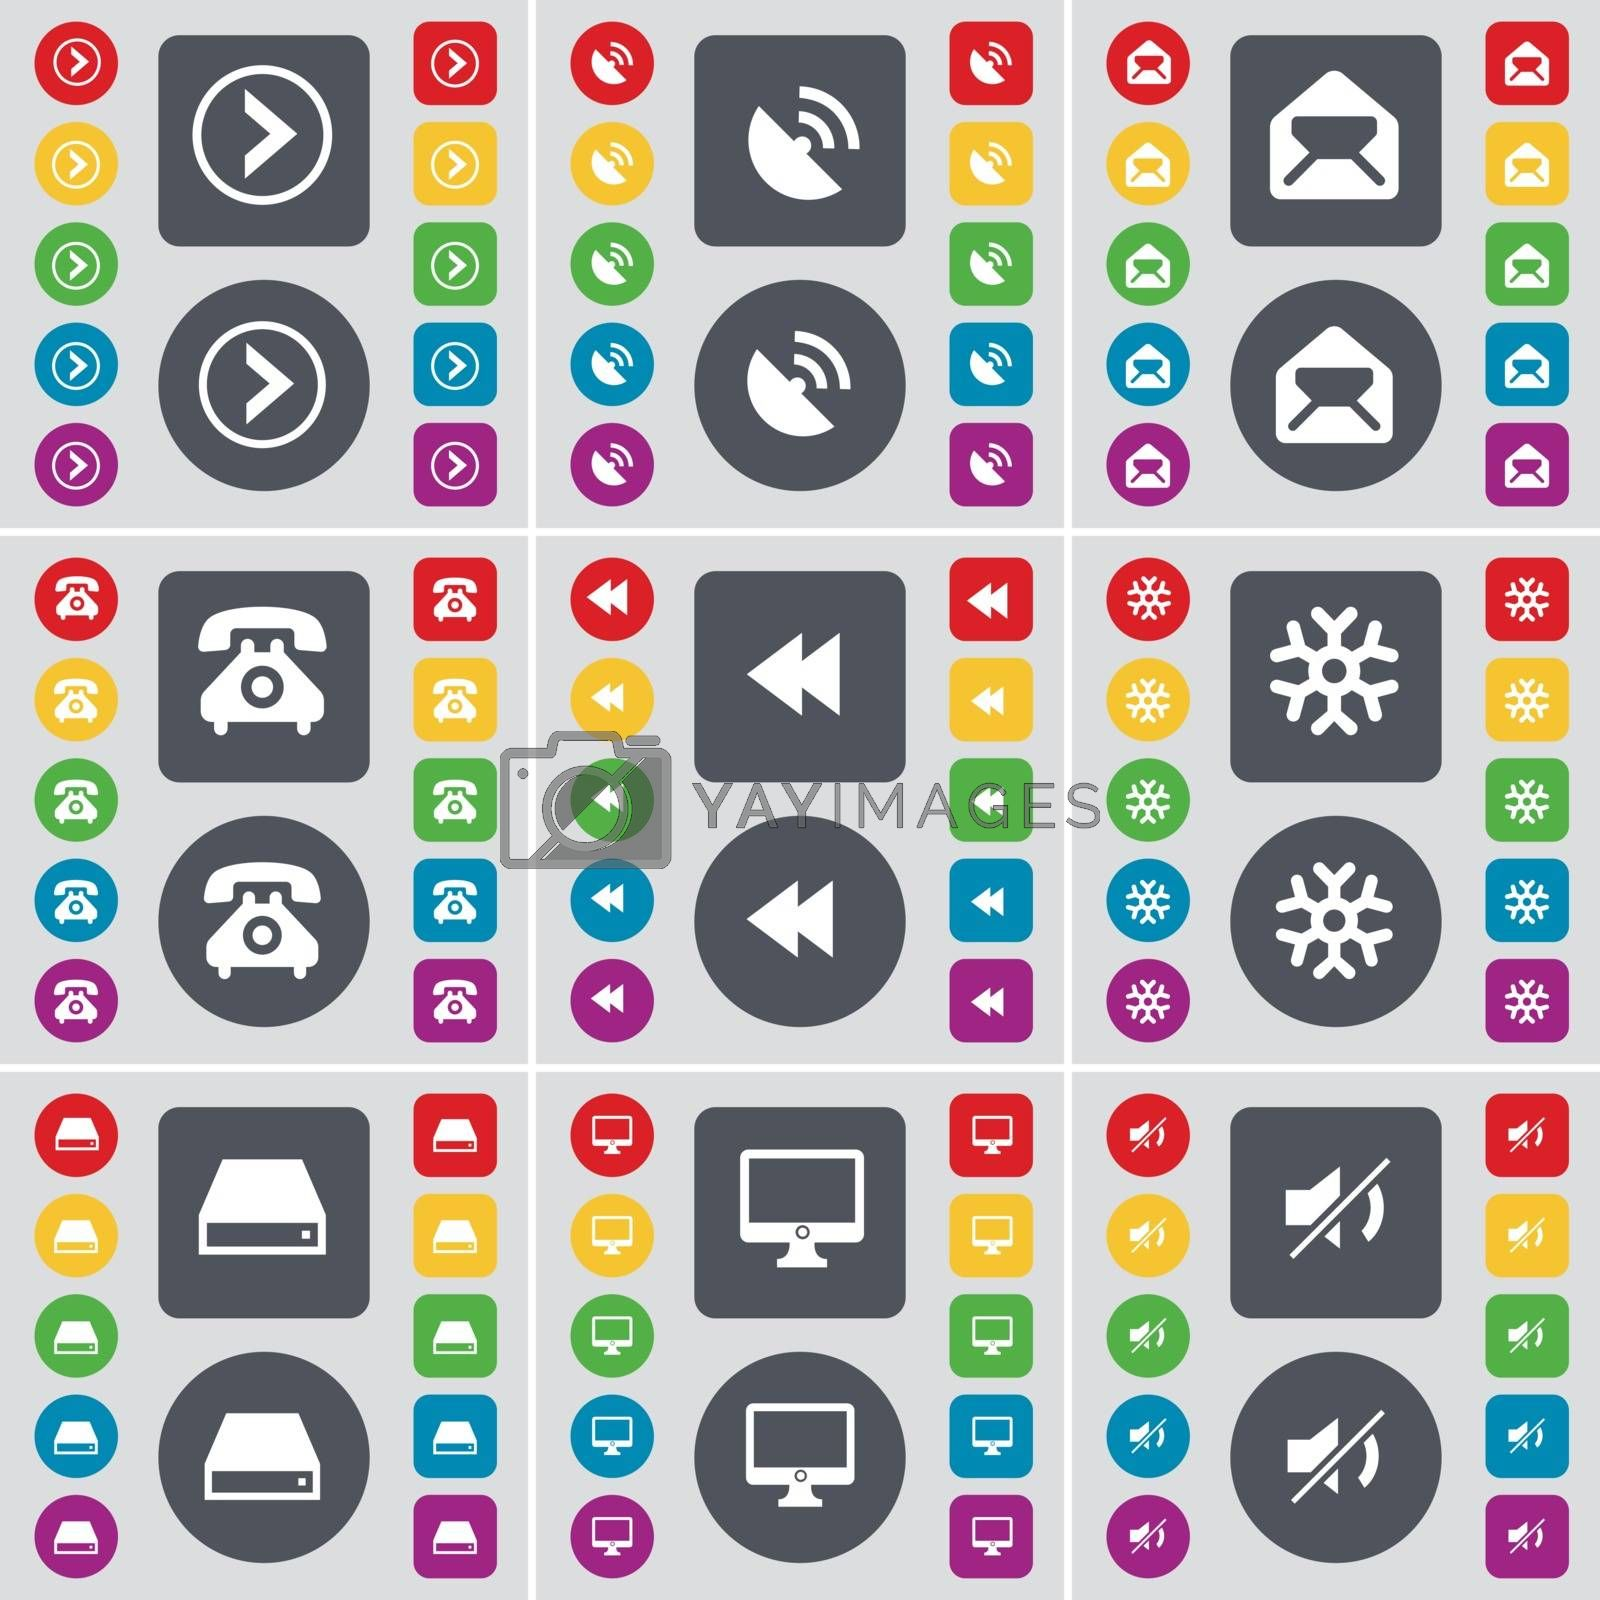 Royalty free image of Arrow right, Satellite dish, Message, Retro phone, Rewind, Snowflake, Hard drive, Monitor, Mute icon symbol. A large set of flat, colored buttons for your design. Vector by serhii_lohvyniuk